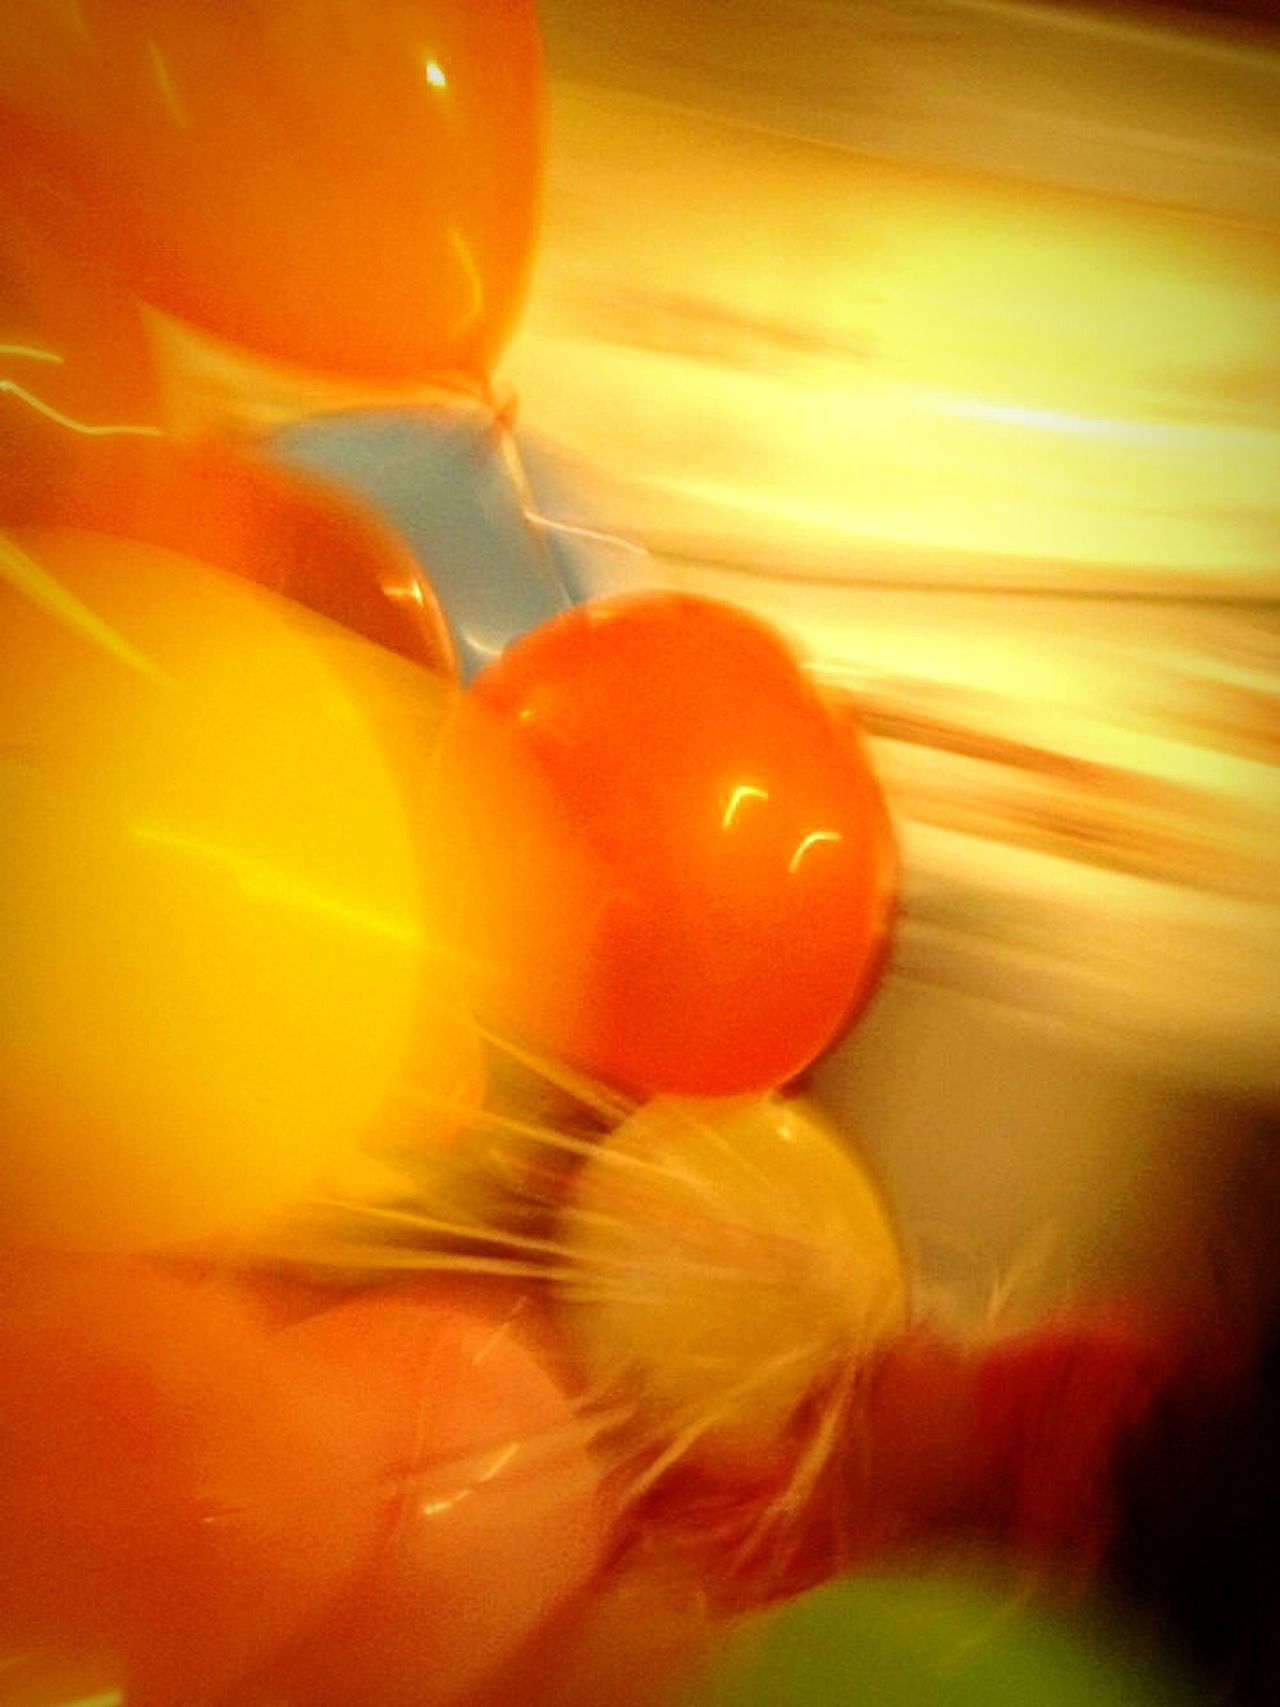 Capture The Moment Balloons Capturing Movement Fleetingmoment Blurry On Purpose Blurred